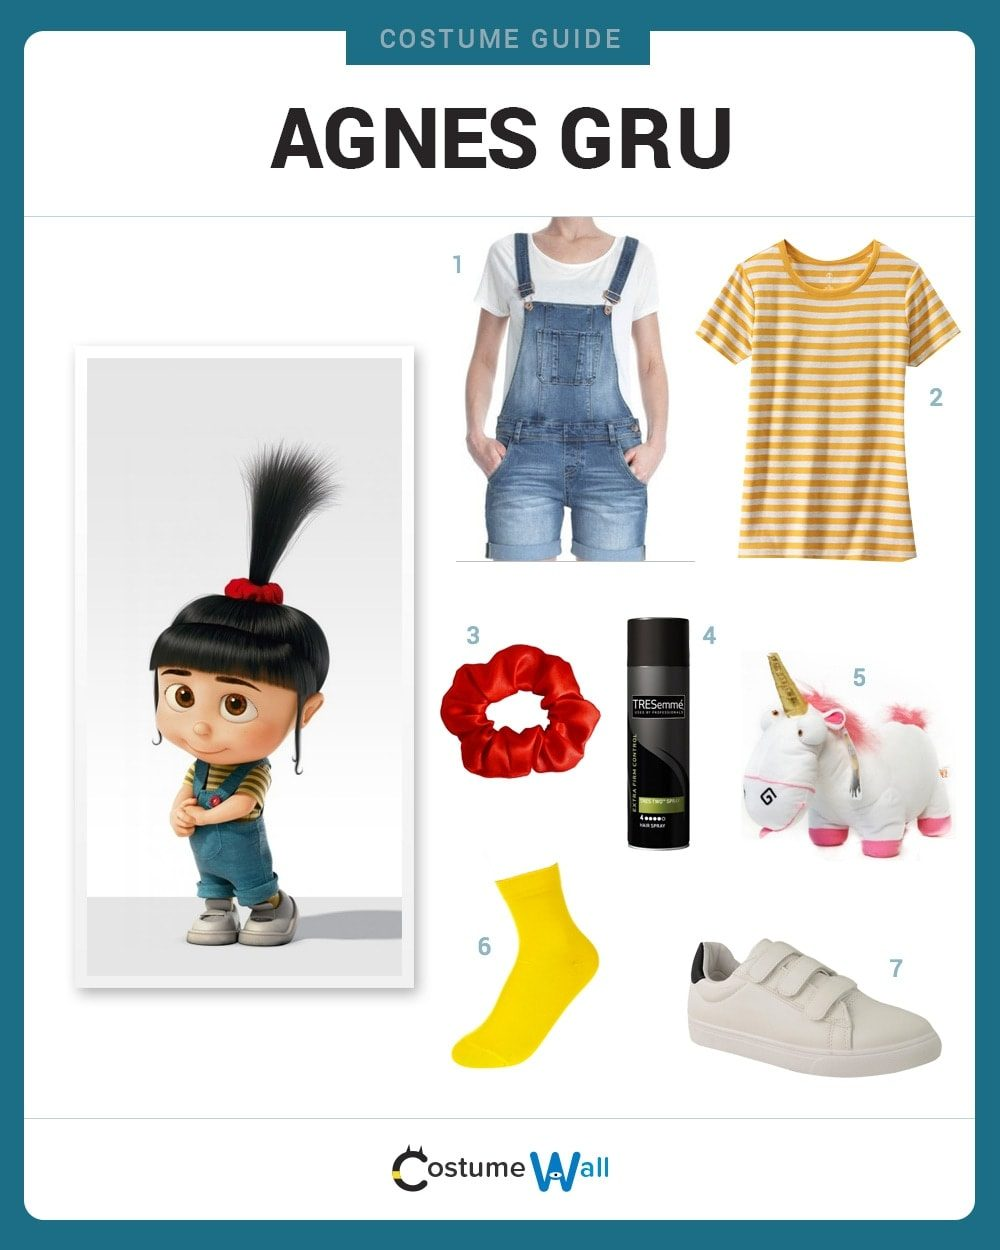 Agnes Gru Costume Guide